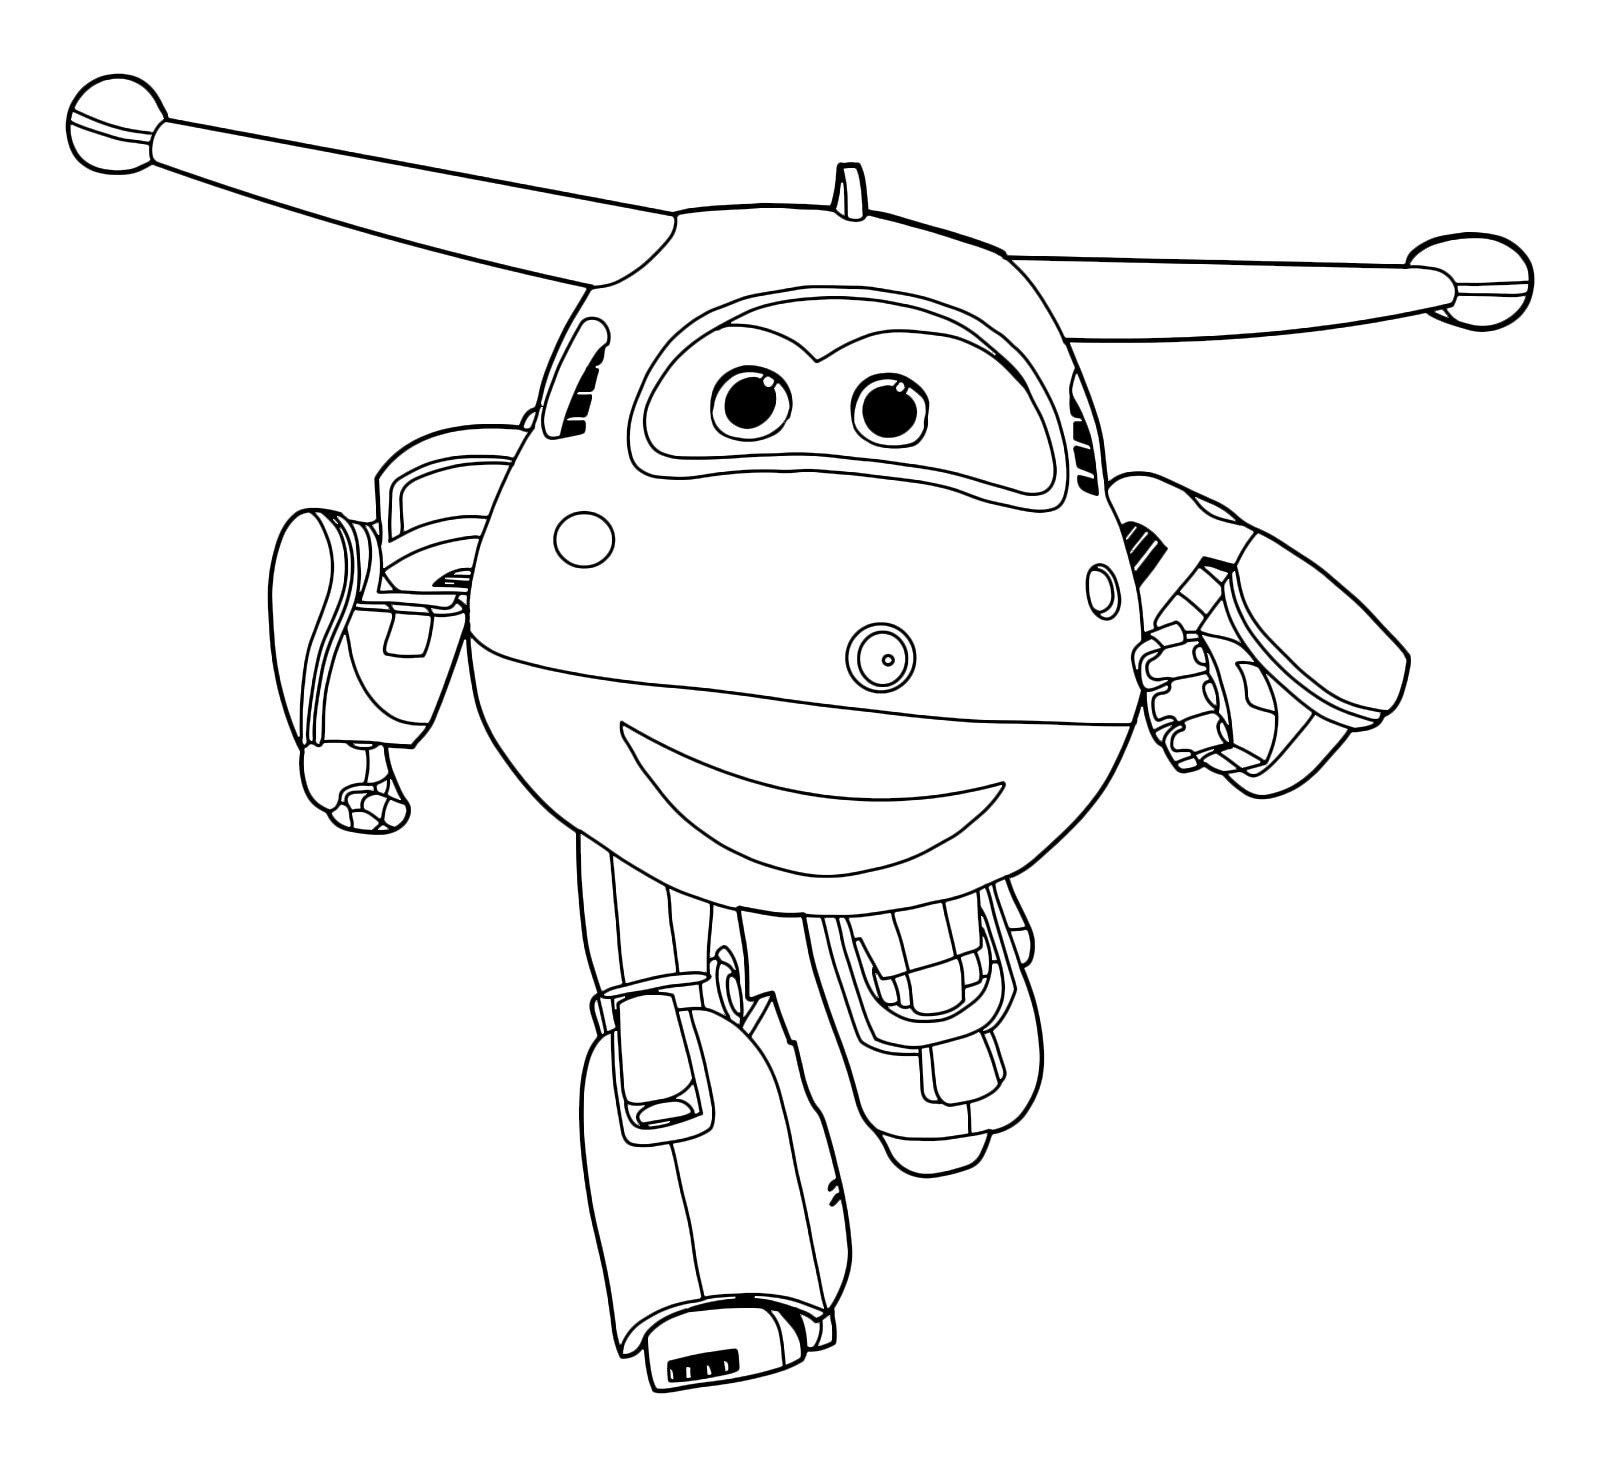 Disegni di super wings da colorare for Disegni da colorare super wings